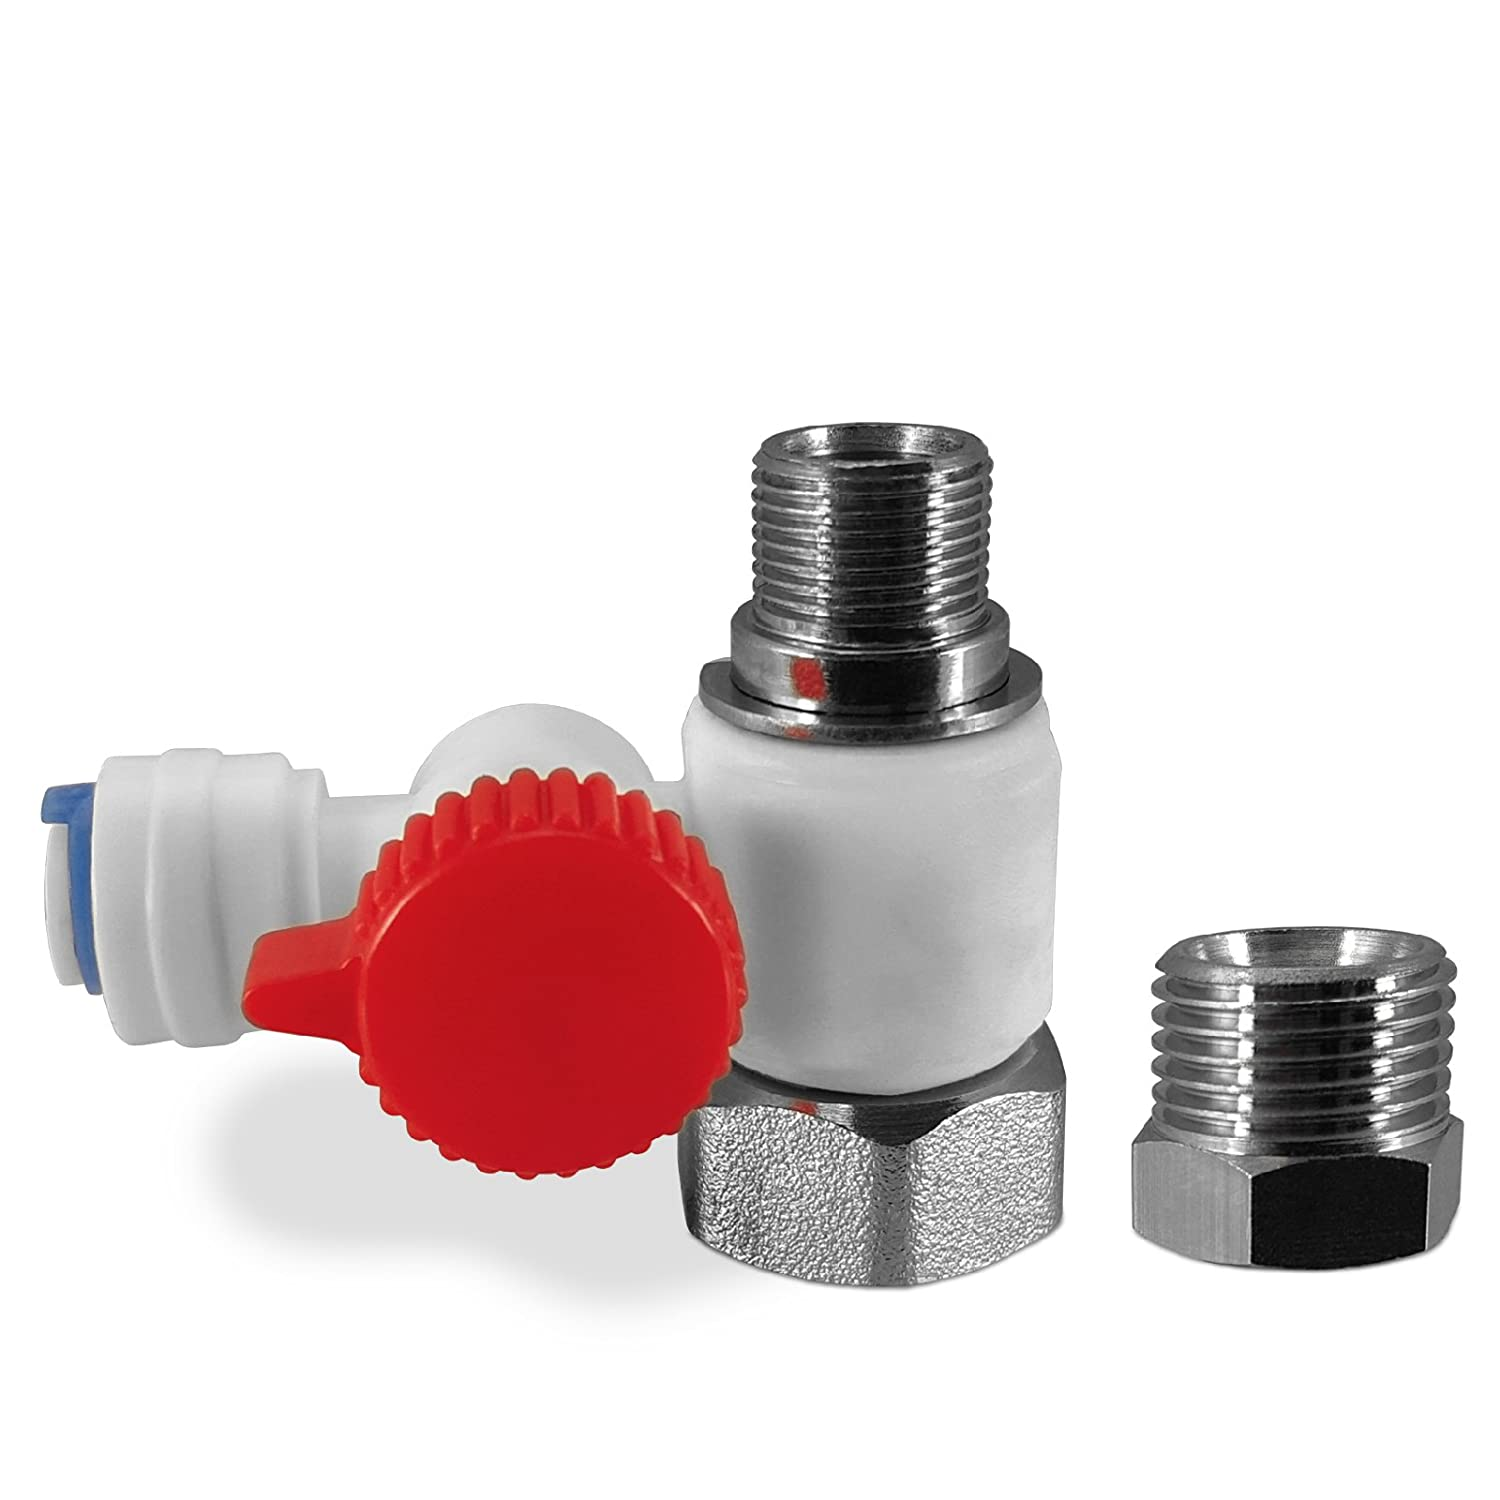 """Express Water RO Feed Adapter Valve Quick Connect for Undersink Reverse Osmosis System Fits Both 3/8"""" & 1/2"""" Connection LEAD FREE"""